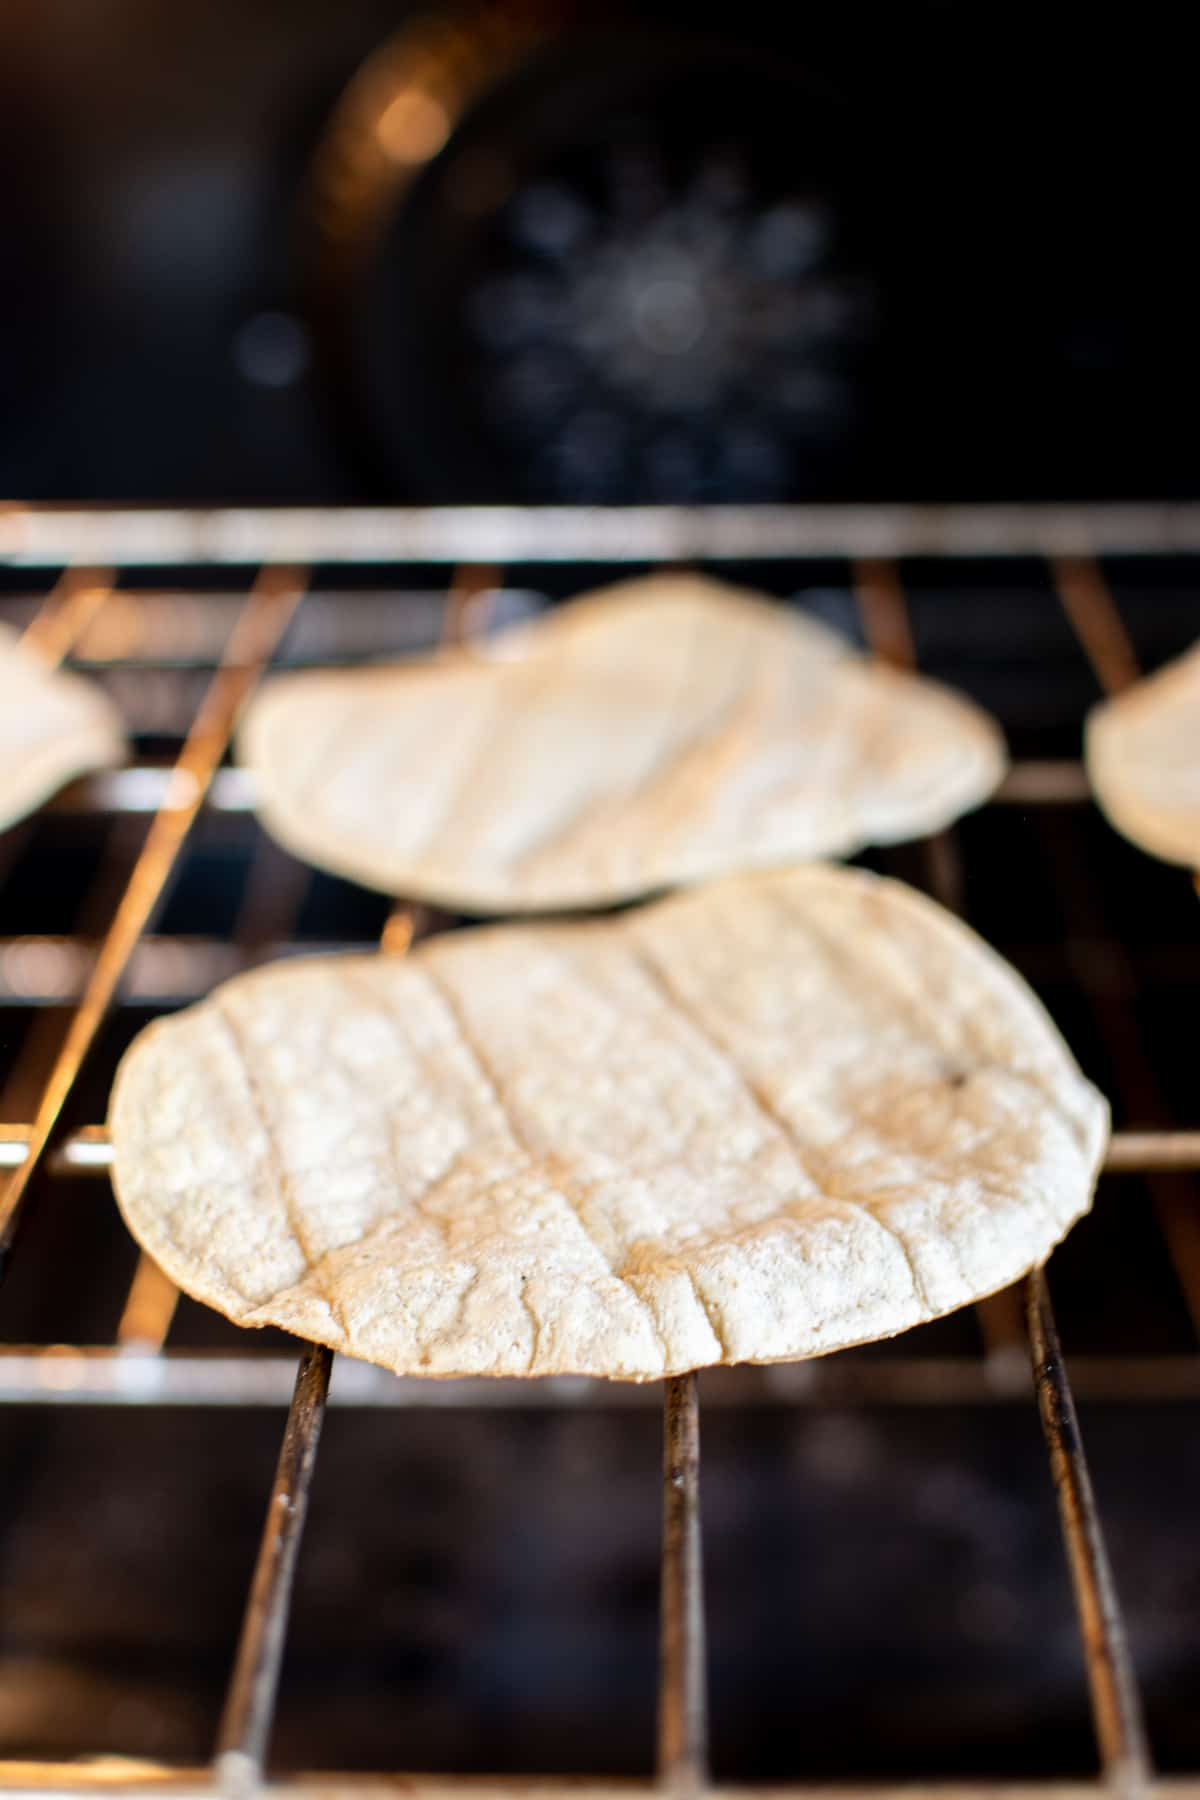 Baked tostadas sitting directly on the oven rack in the oven.